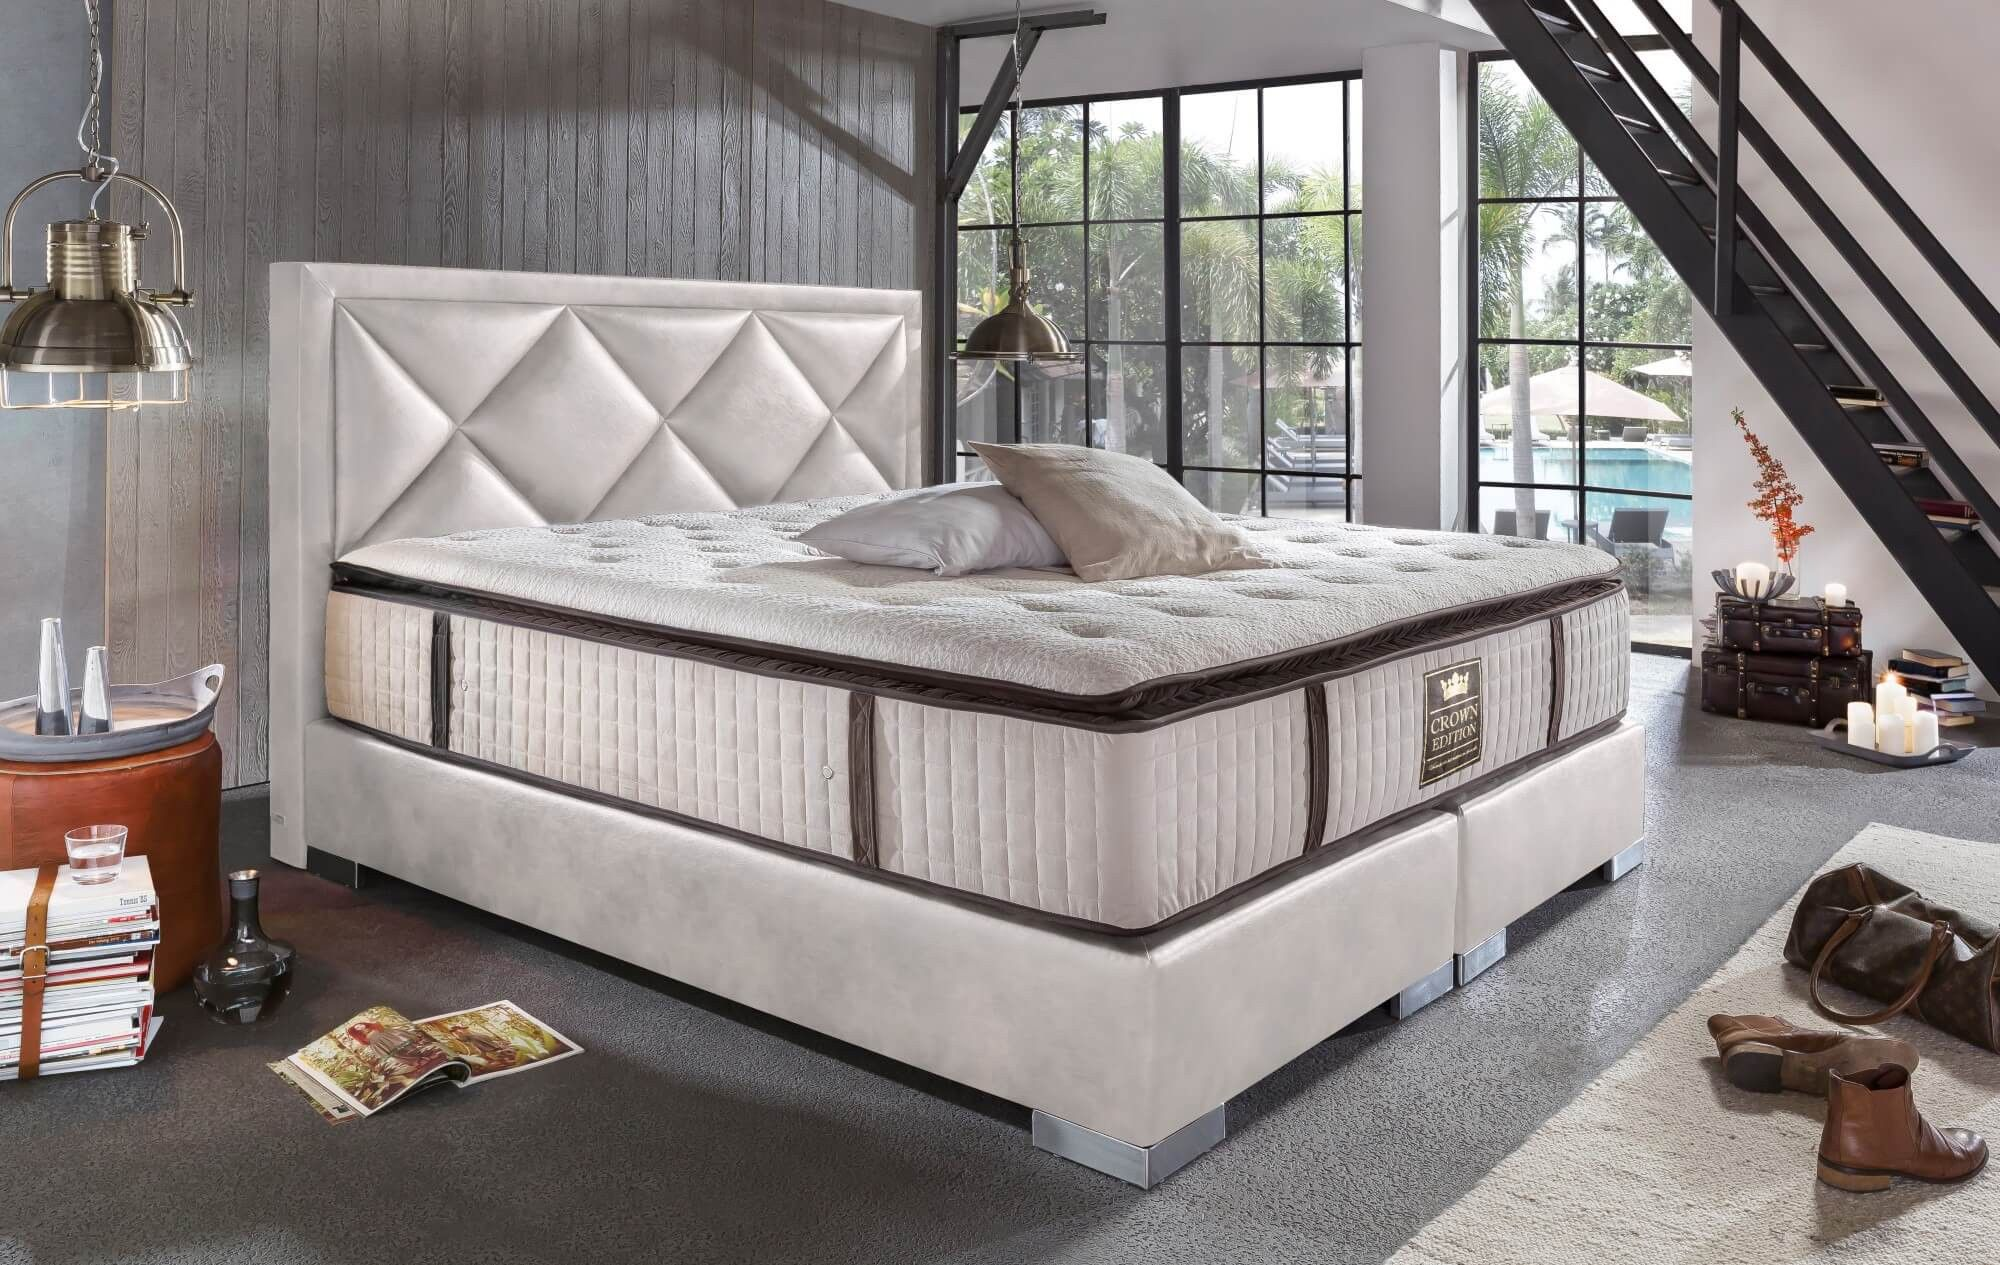 Boxspringbed Plaza Modern Box Spring Bed Contemporary Furniture Stores Luxury Sofa